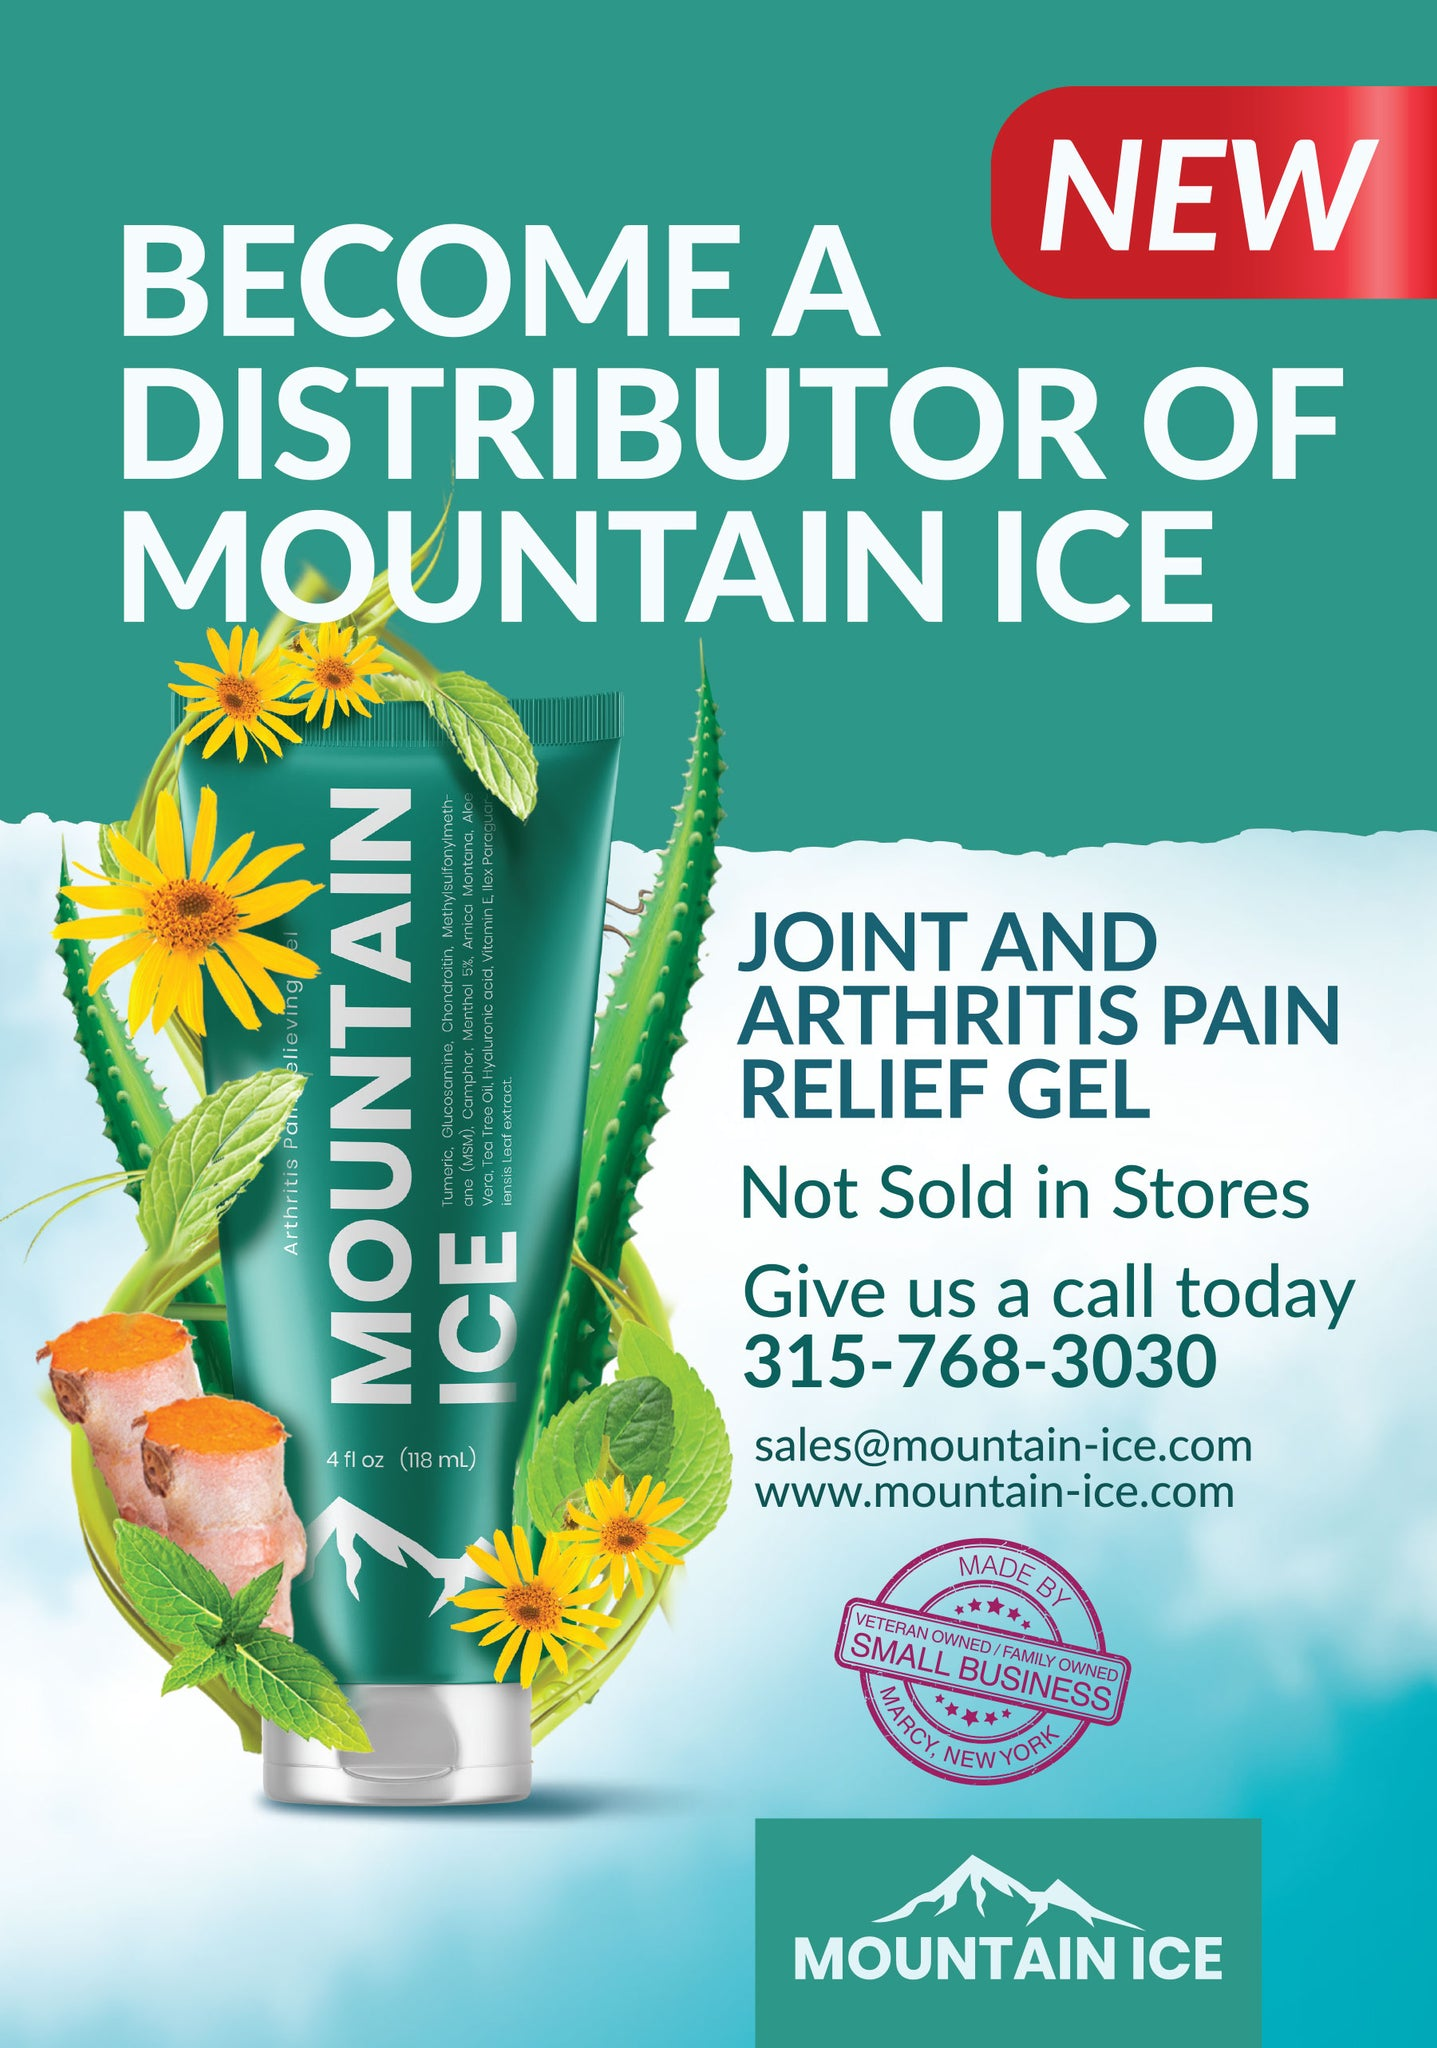 Become a Dealer for Mountain Ice Pain Relief Gel. Call 1-888-687-4334